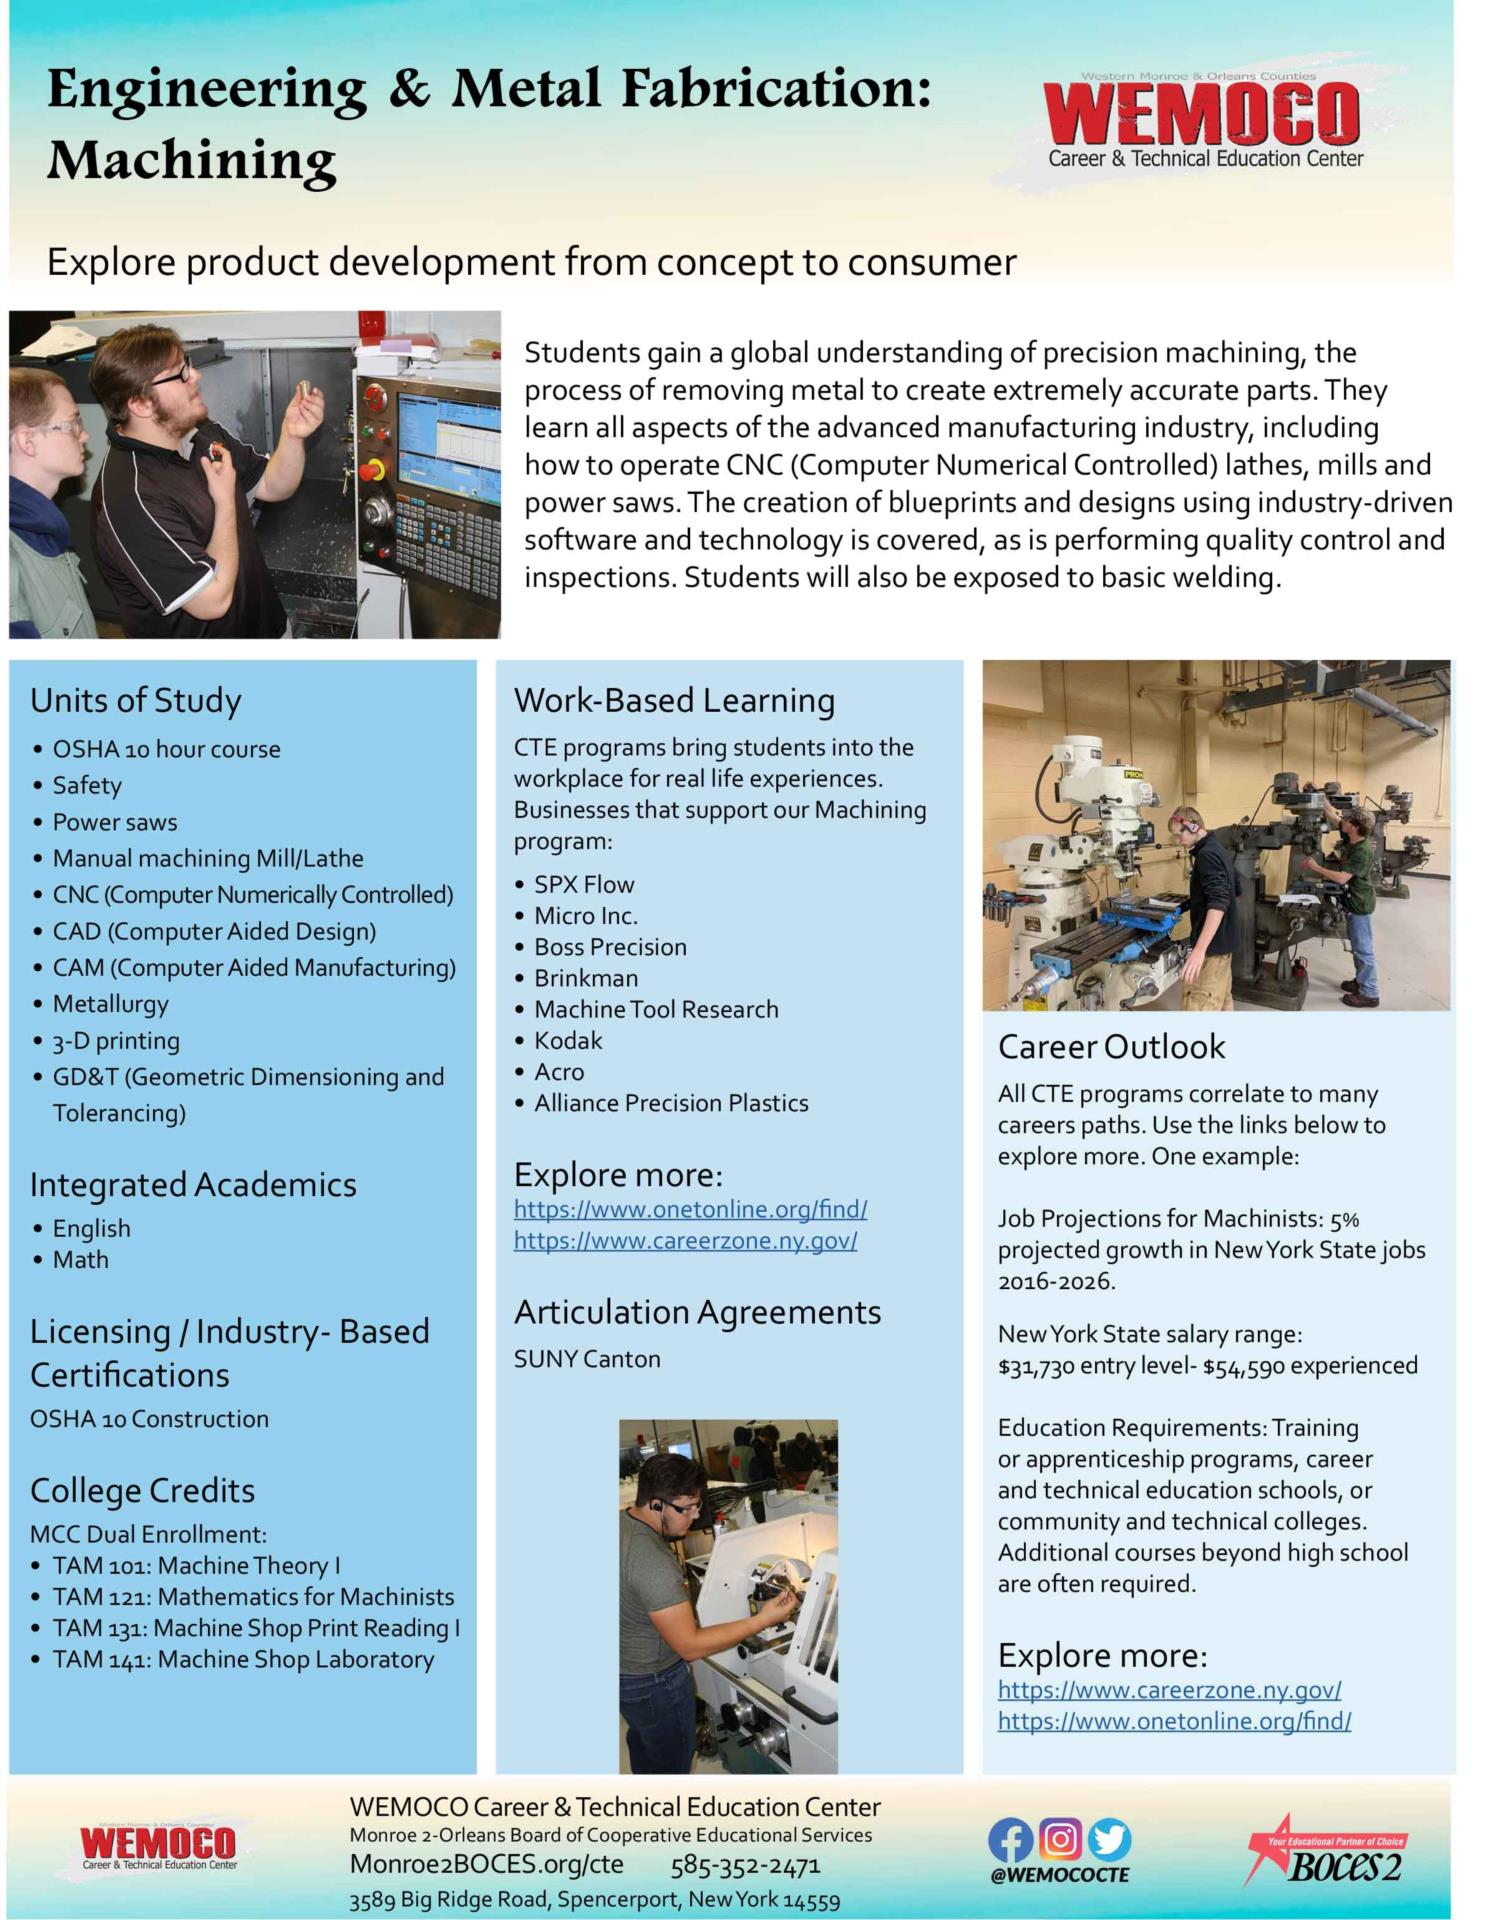 Download a PDF overview of the Engineering and Metal Fabrication: Machining program information